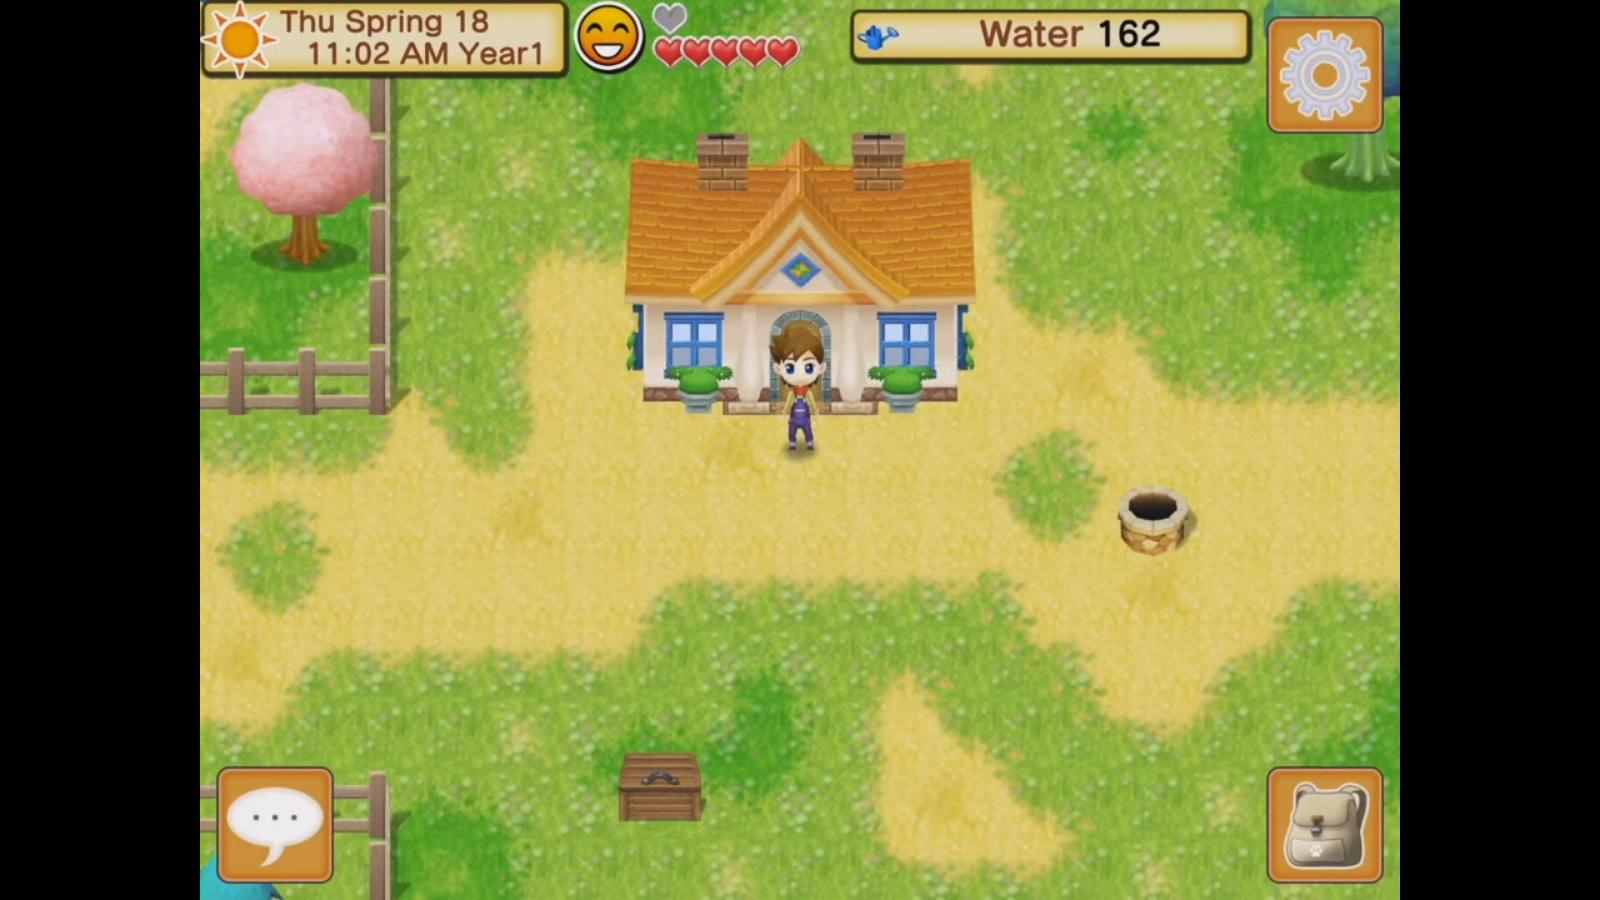 Via http://nintendoeverything.comhttps://cdn.kincir.com/1/old/harvest-moon-seeds-memories-gameplay.jpg